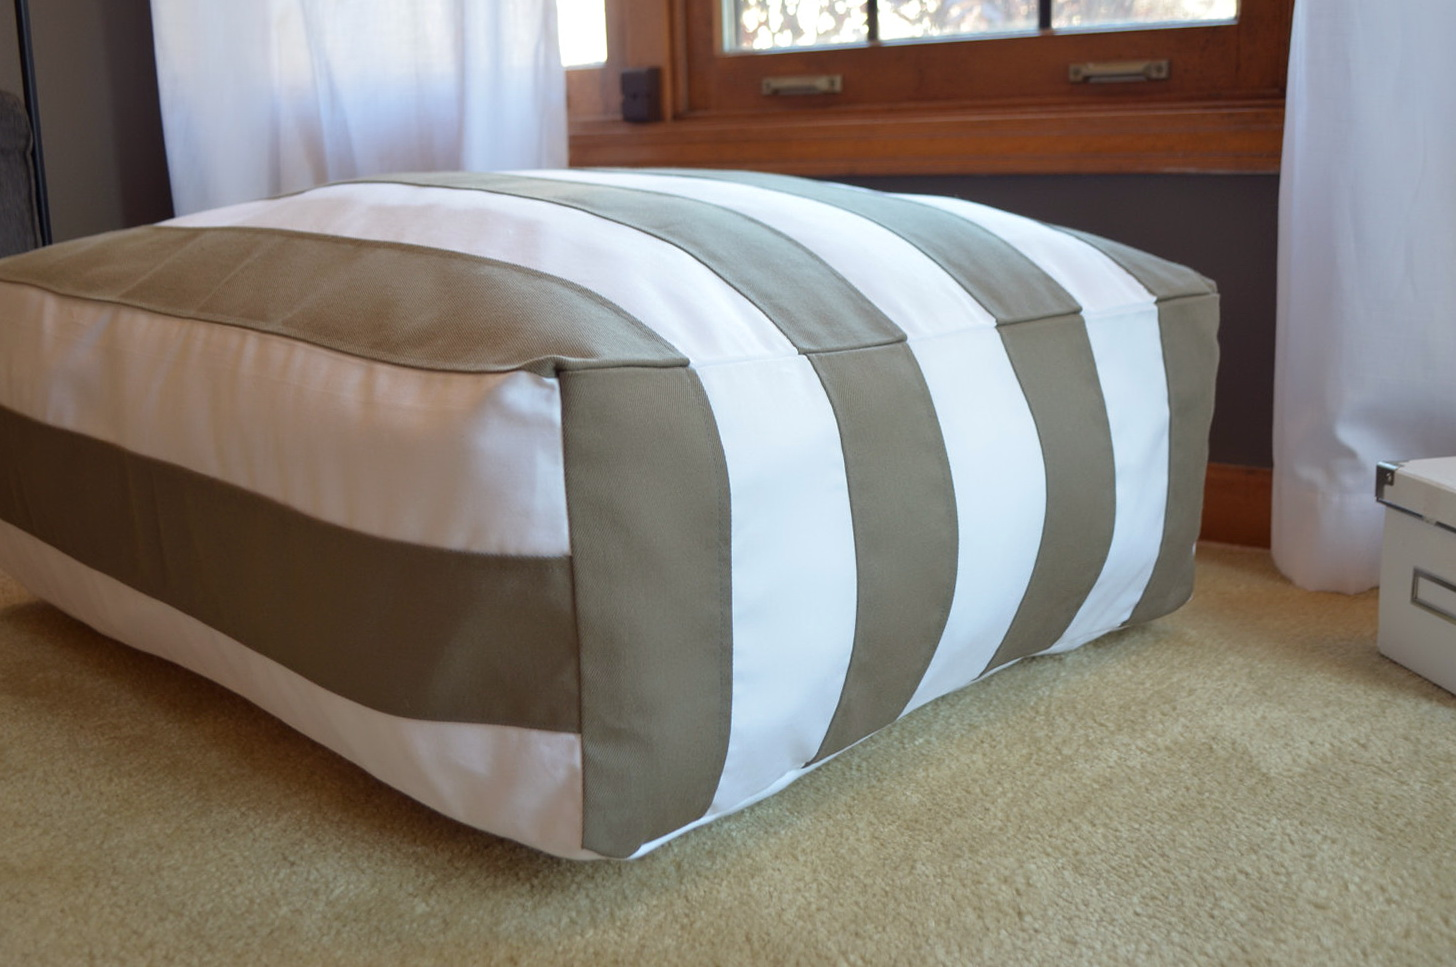 Use your own custom designs to create large floor cushions for the home or office. These giant floor cushions are available in four different sizes which are all lightweight, with a removable cover for easy cleaning.